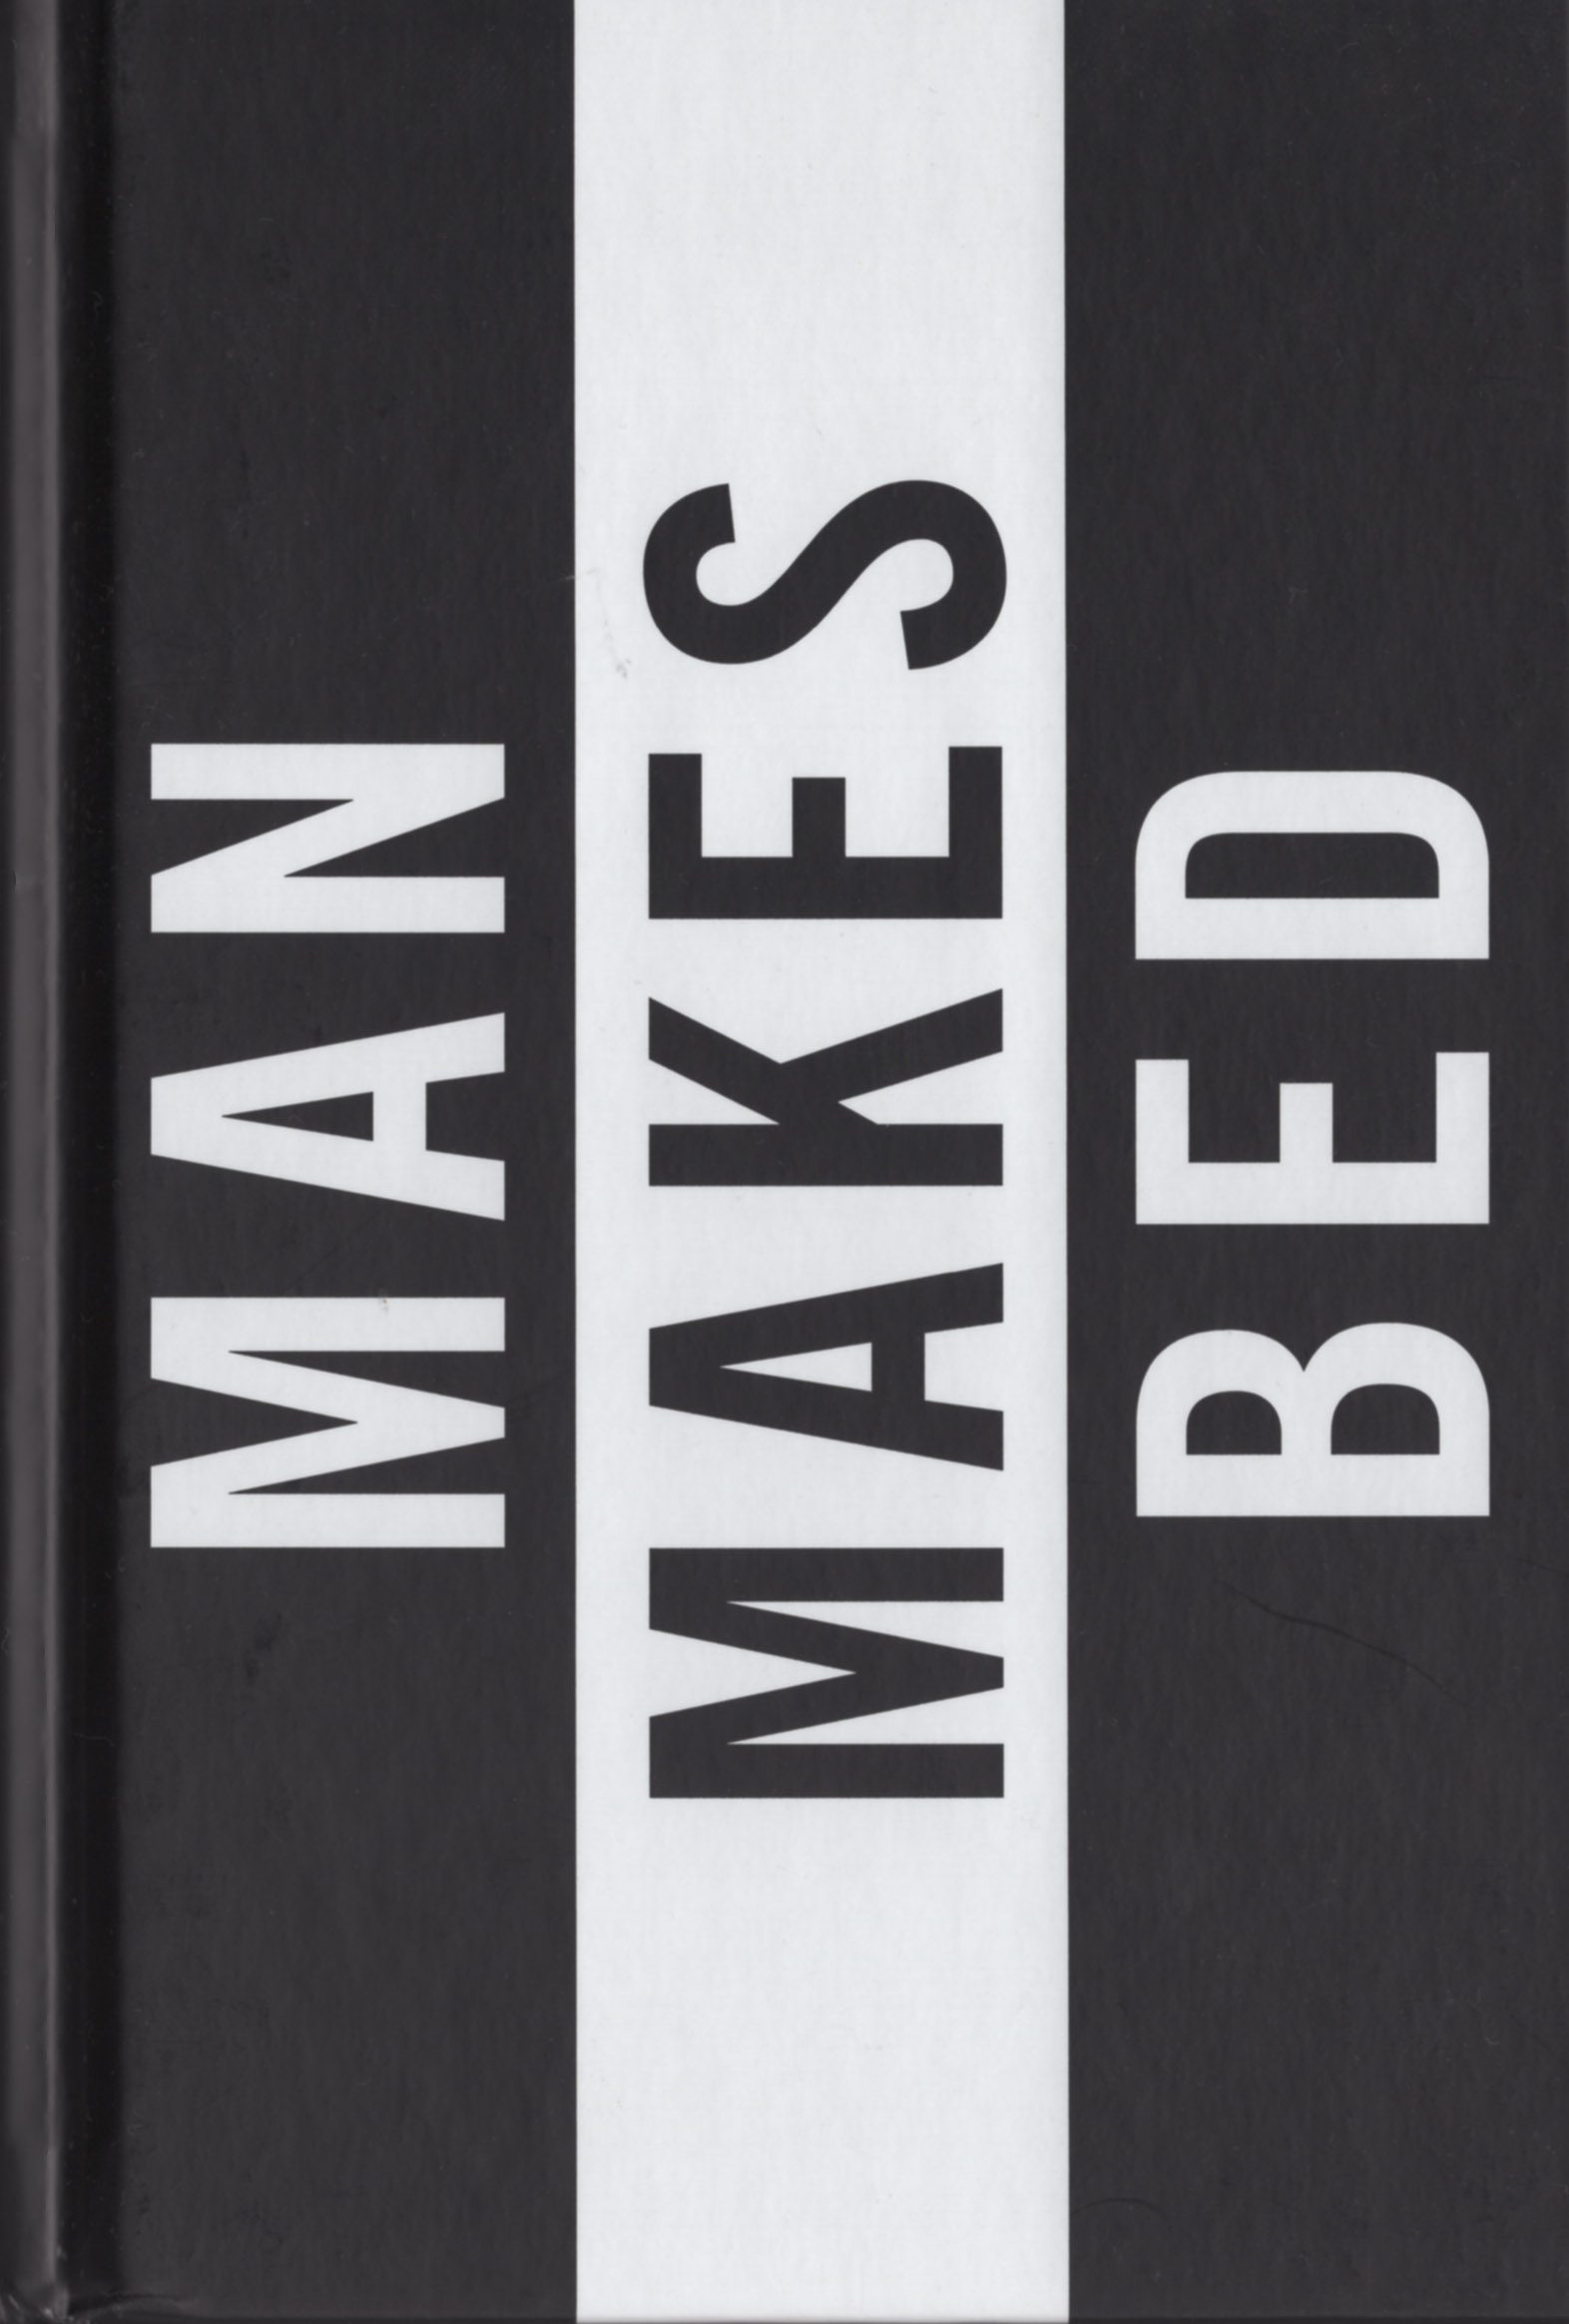 Man Makes Bed (Hardcover Edition)